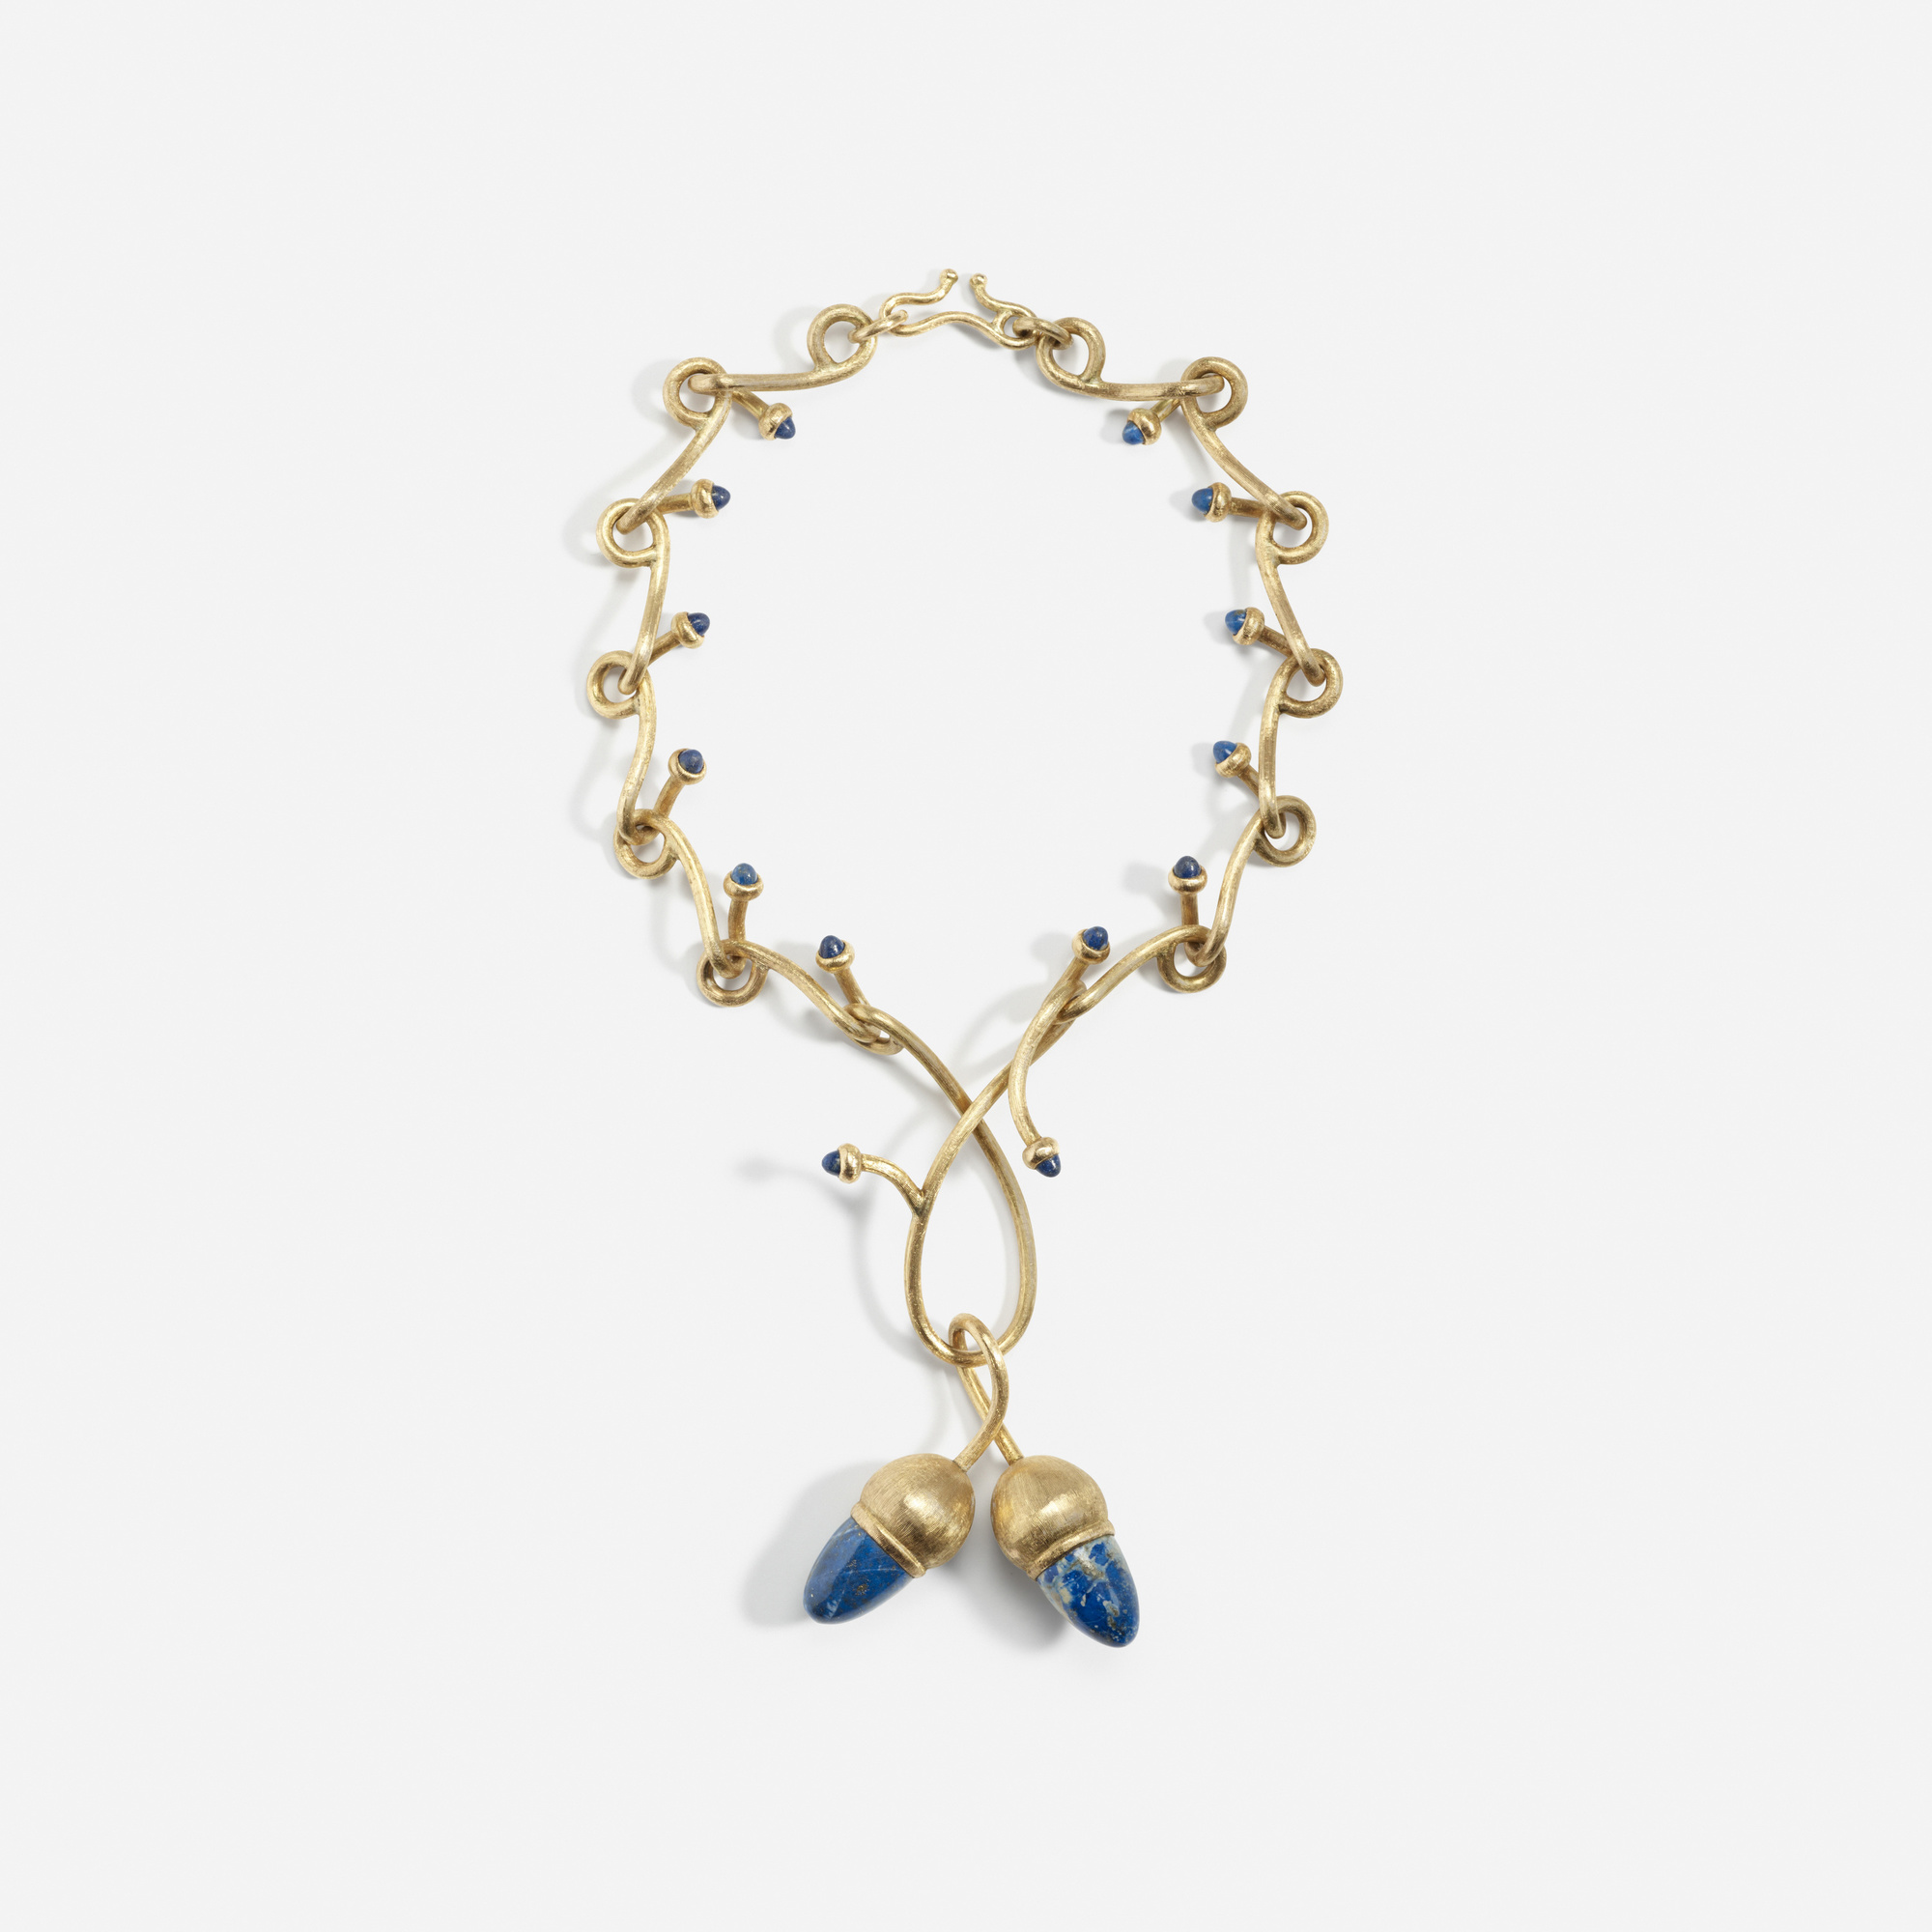 195:  / A gold and lapis lazuli necklace (1 of 1)